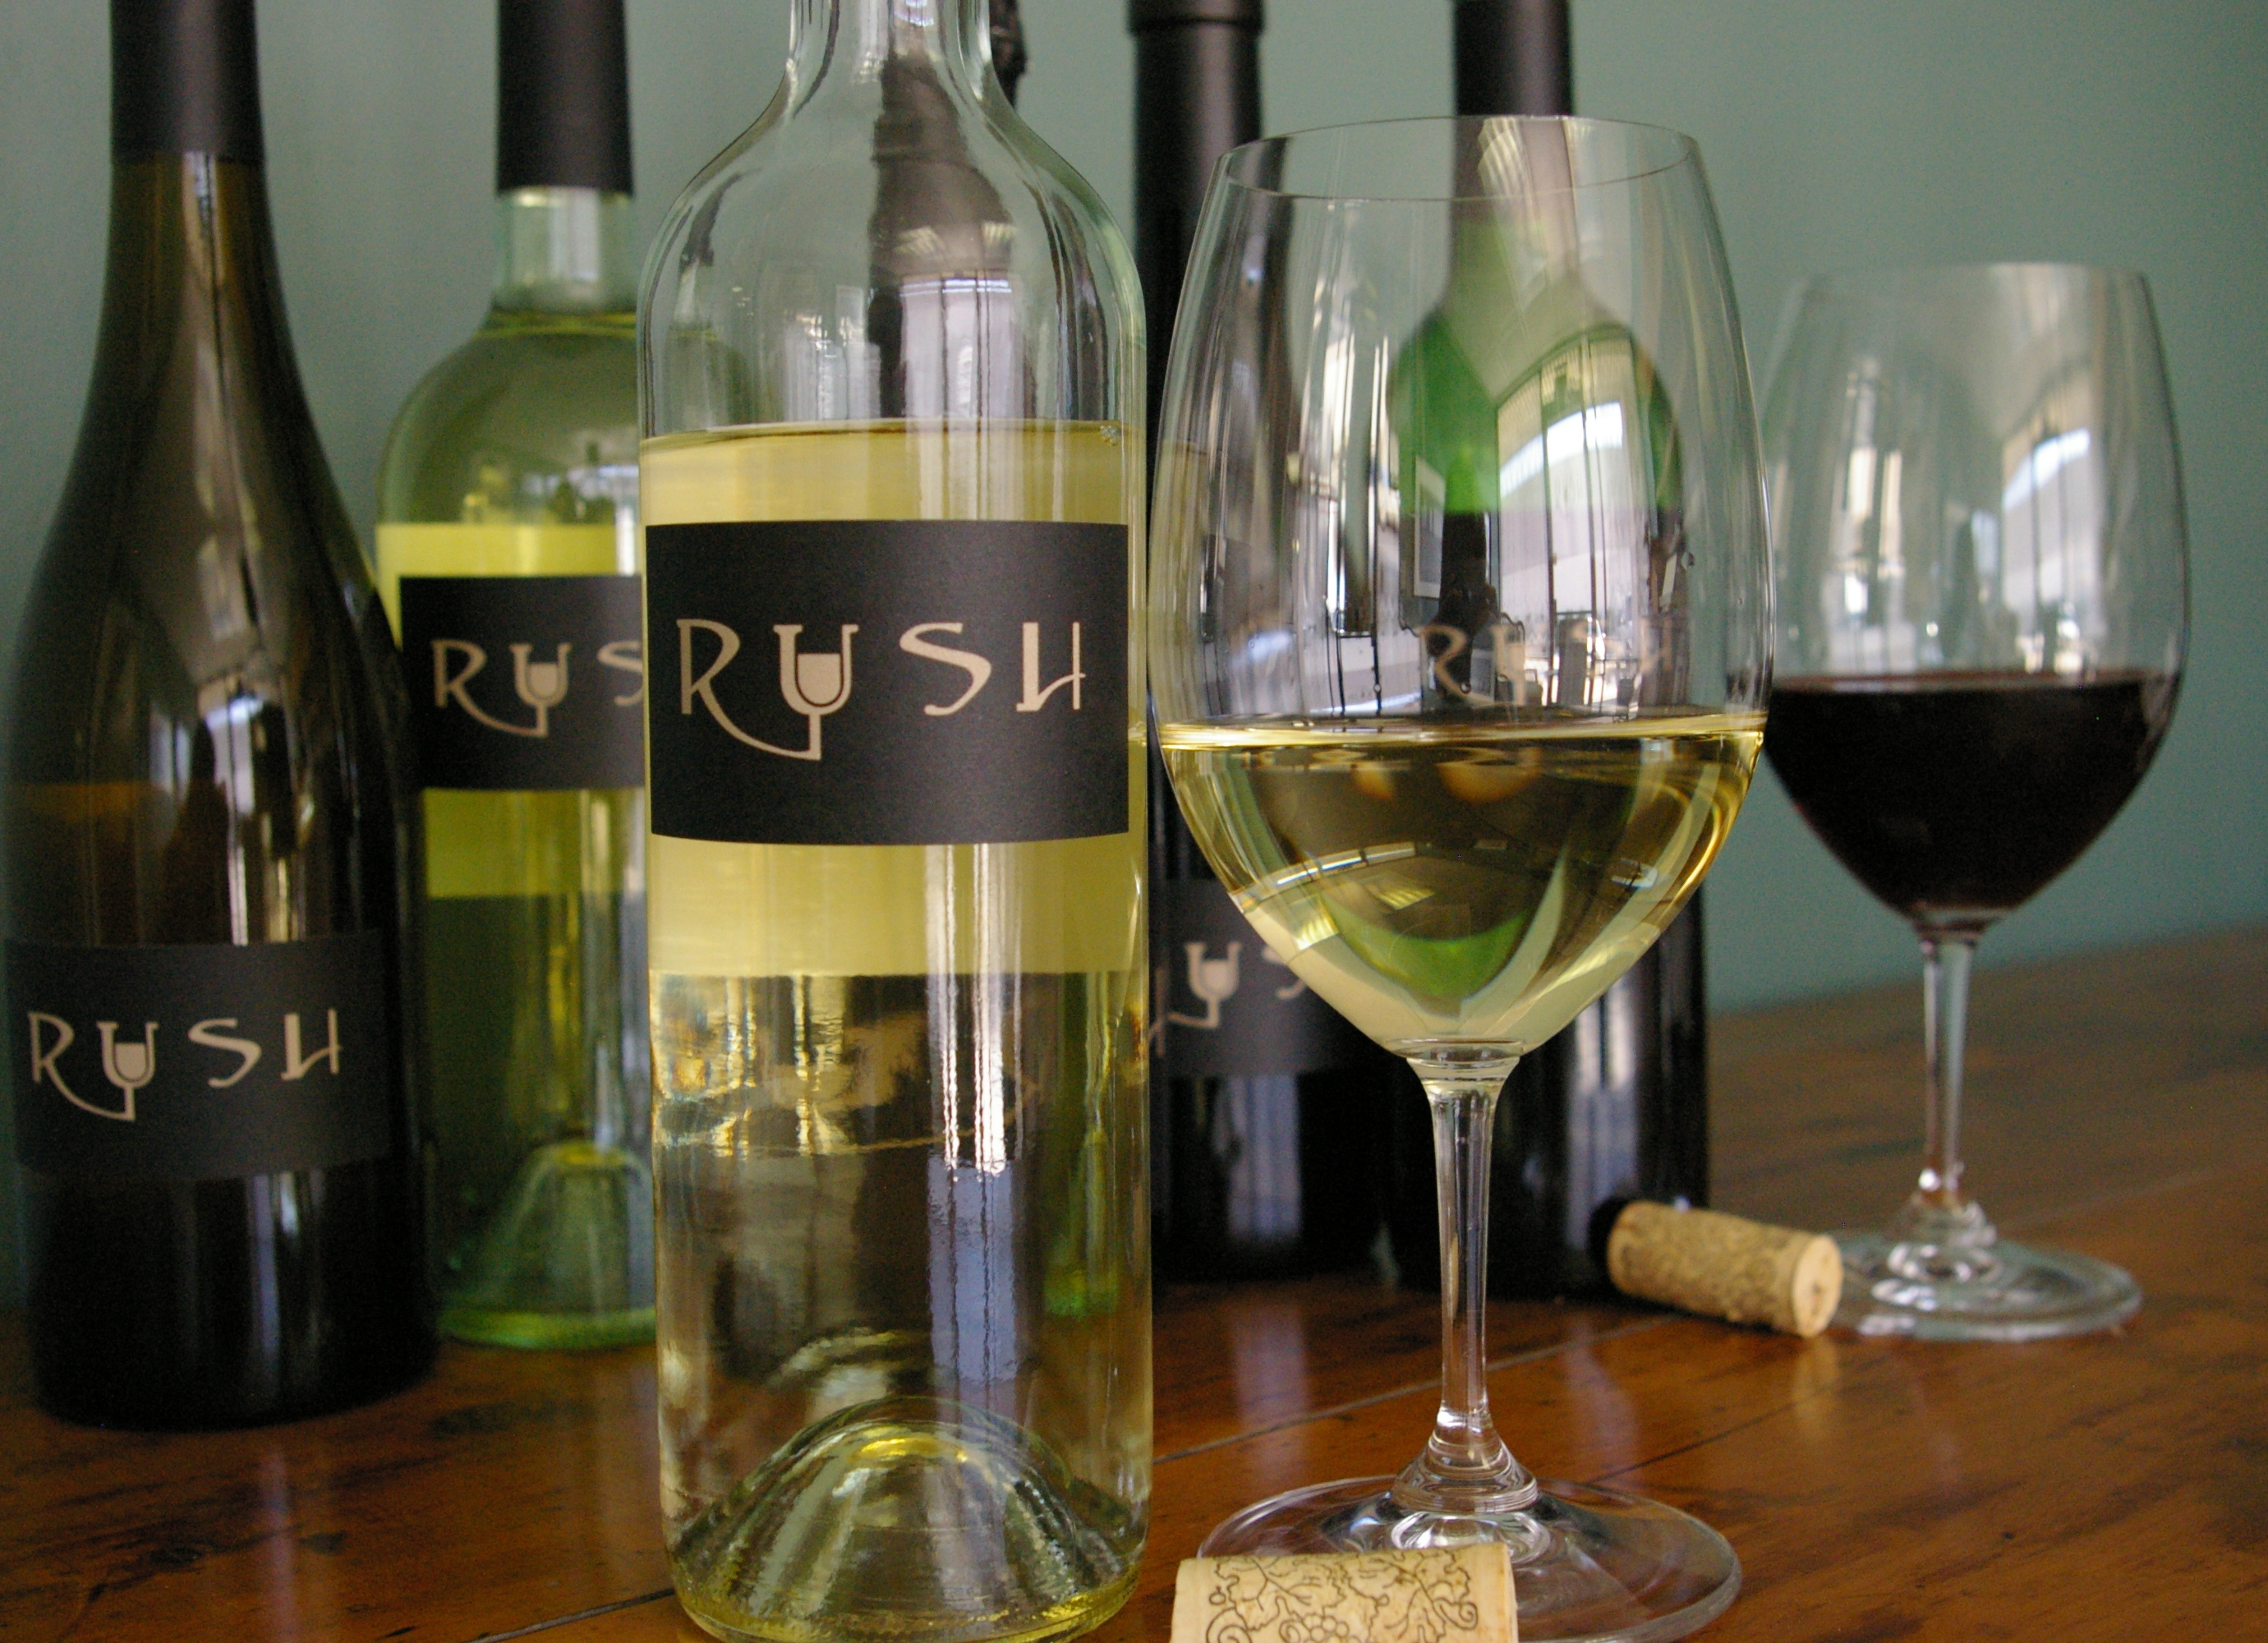 Rush Cellars Bottles